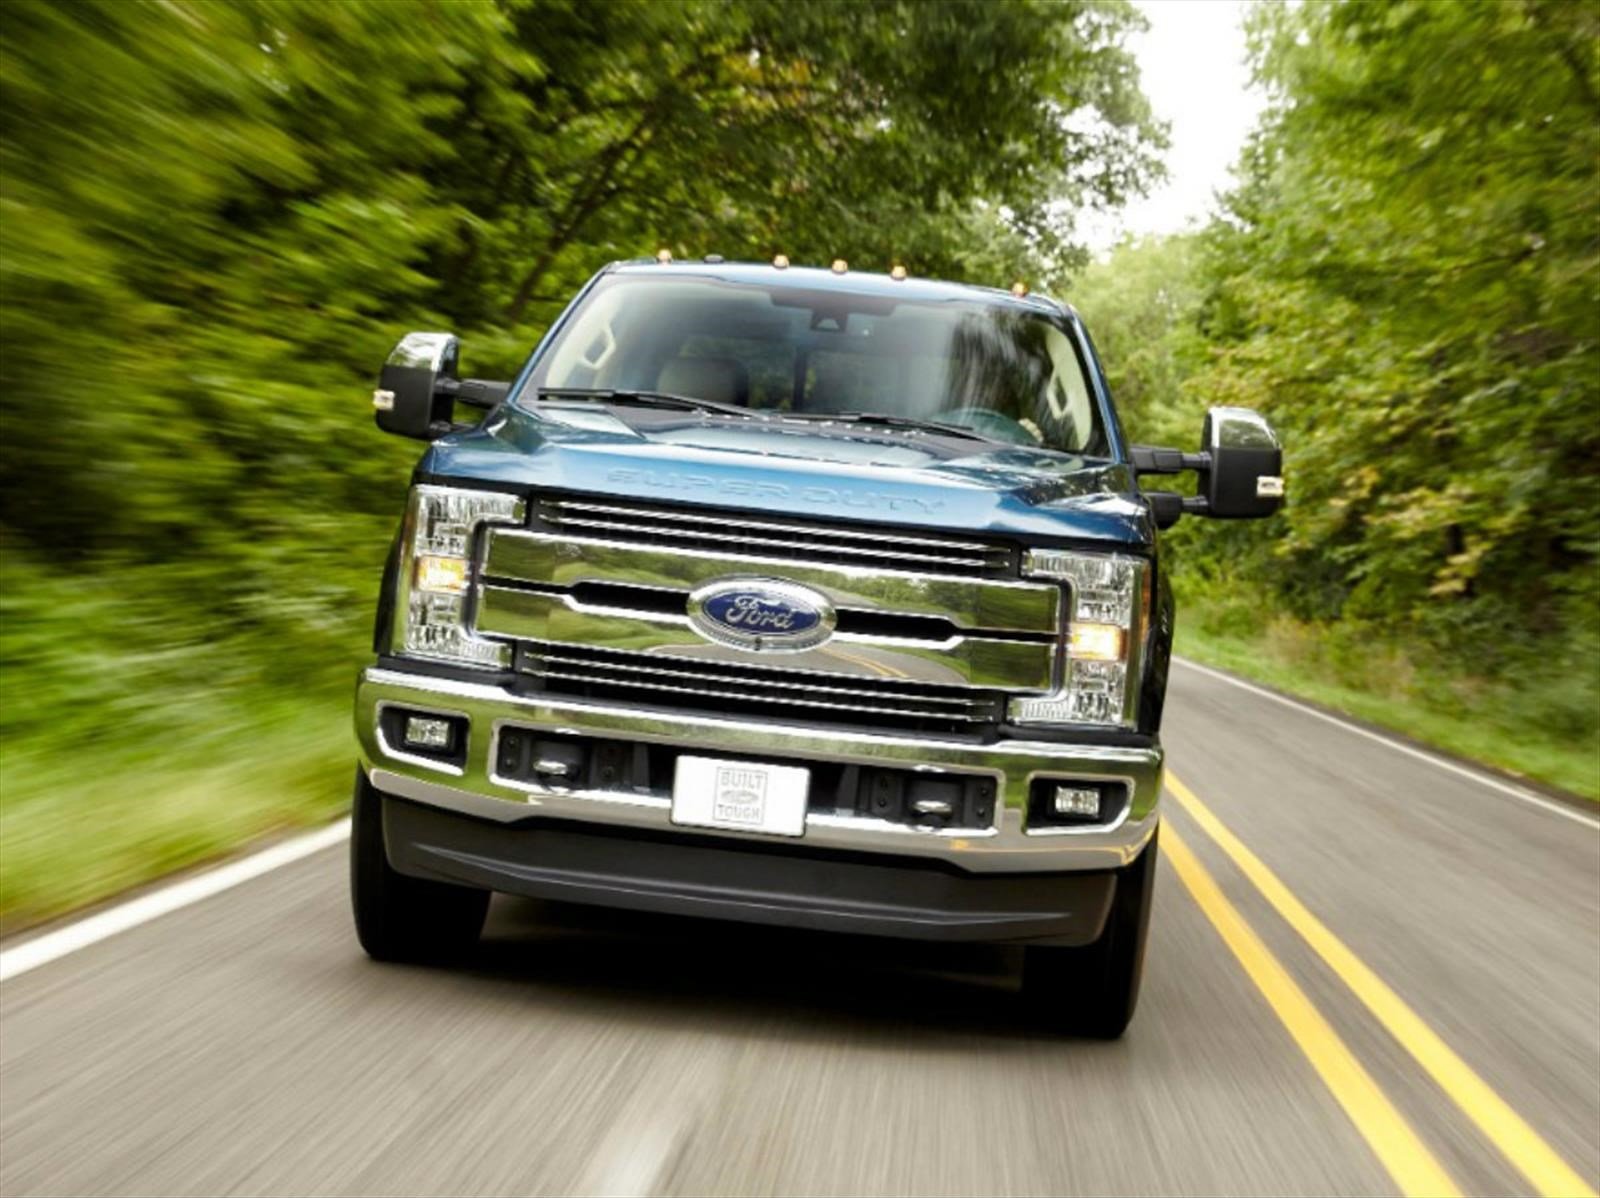 Ford F-Series Super Duty, la pick-up más poderosa de la historia